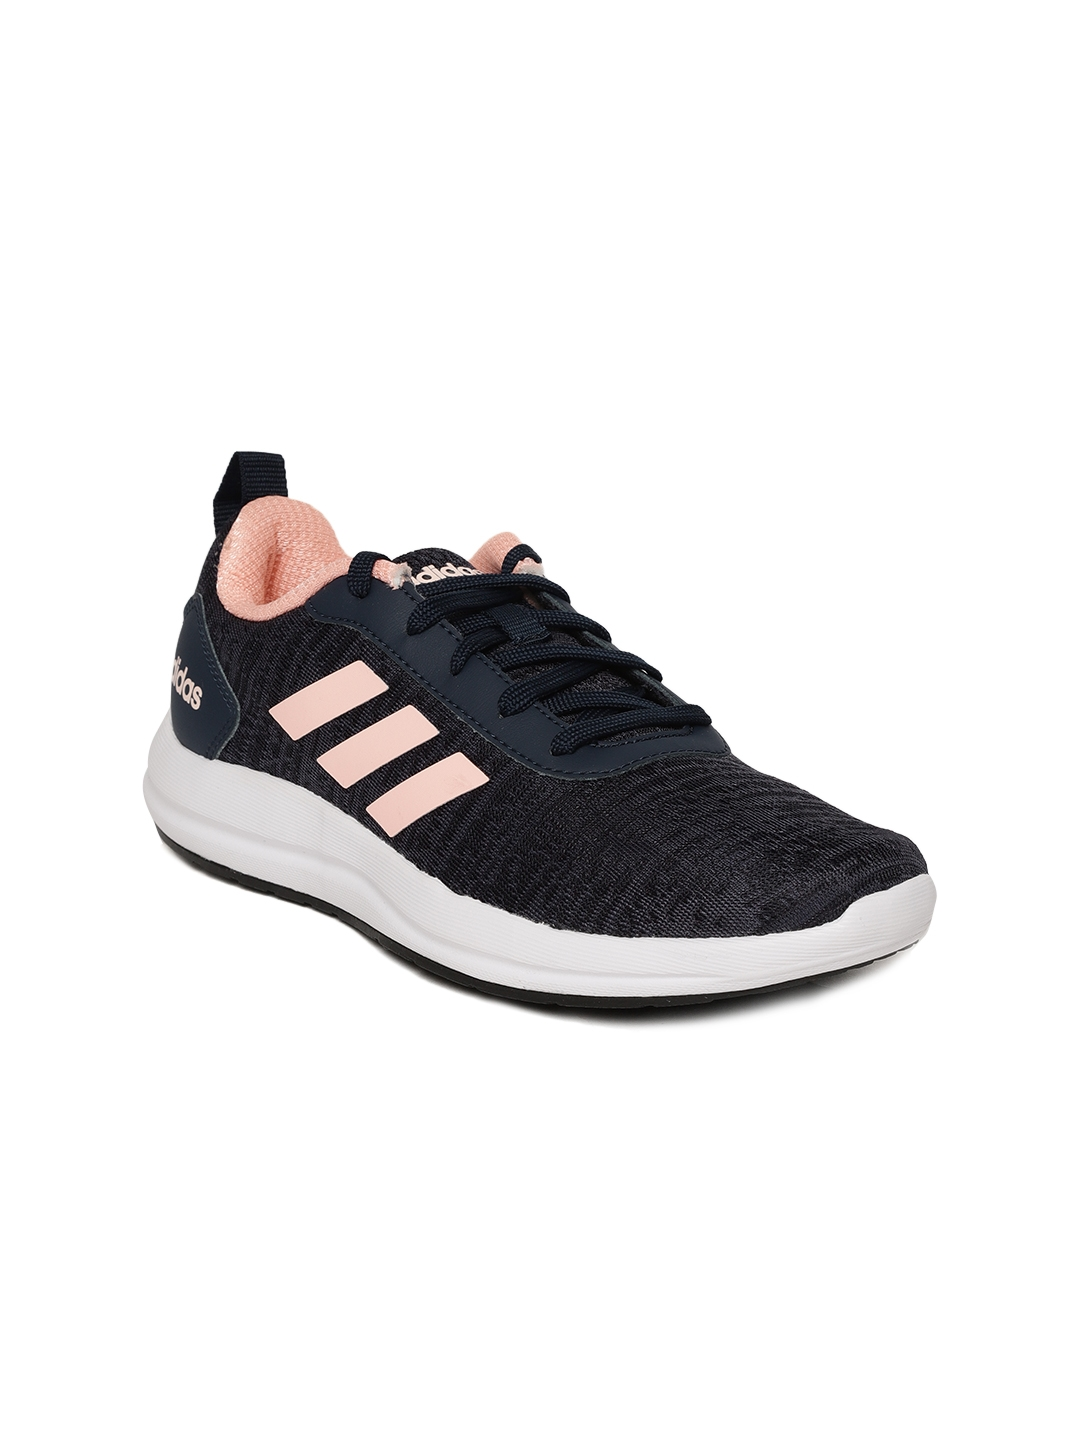 e2fc7ccb7ab Buy ADIDAS Women Navy VIDELL Patterned Running Shoes - Sports Shoes ...